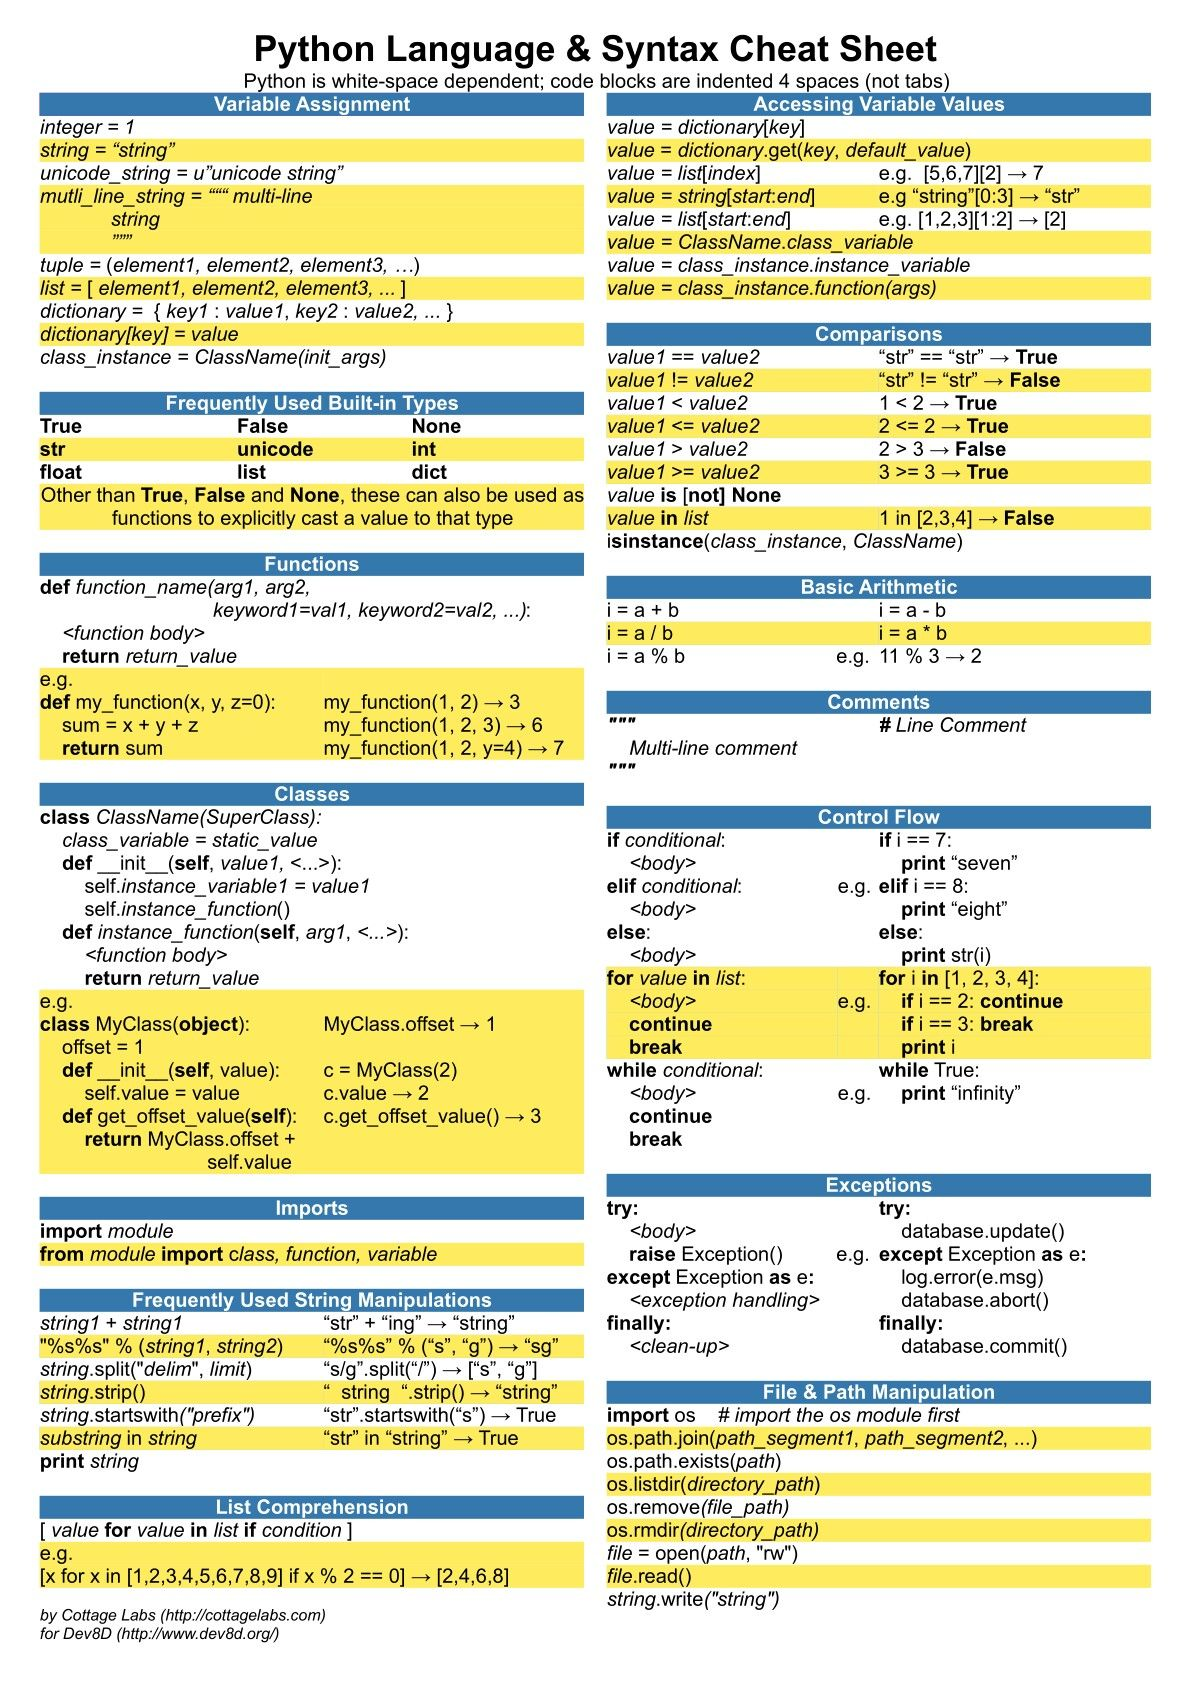 Python Language And Syntax Cheat Sheet By Cottage Labs Python Programming Computer Science Programming Basic Computer Programming